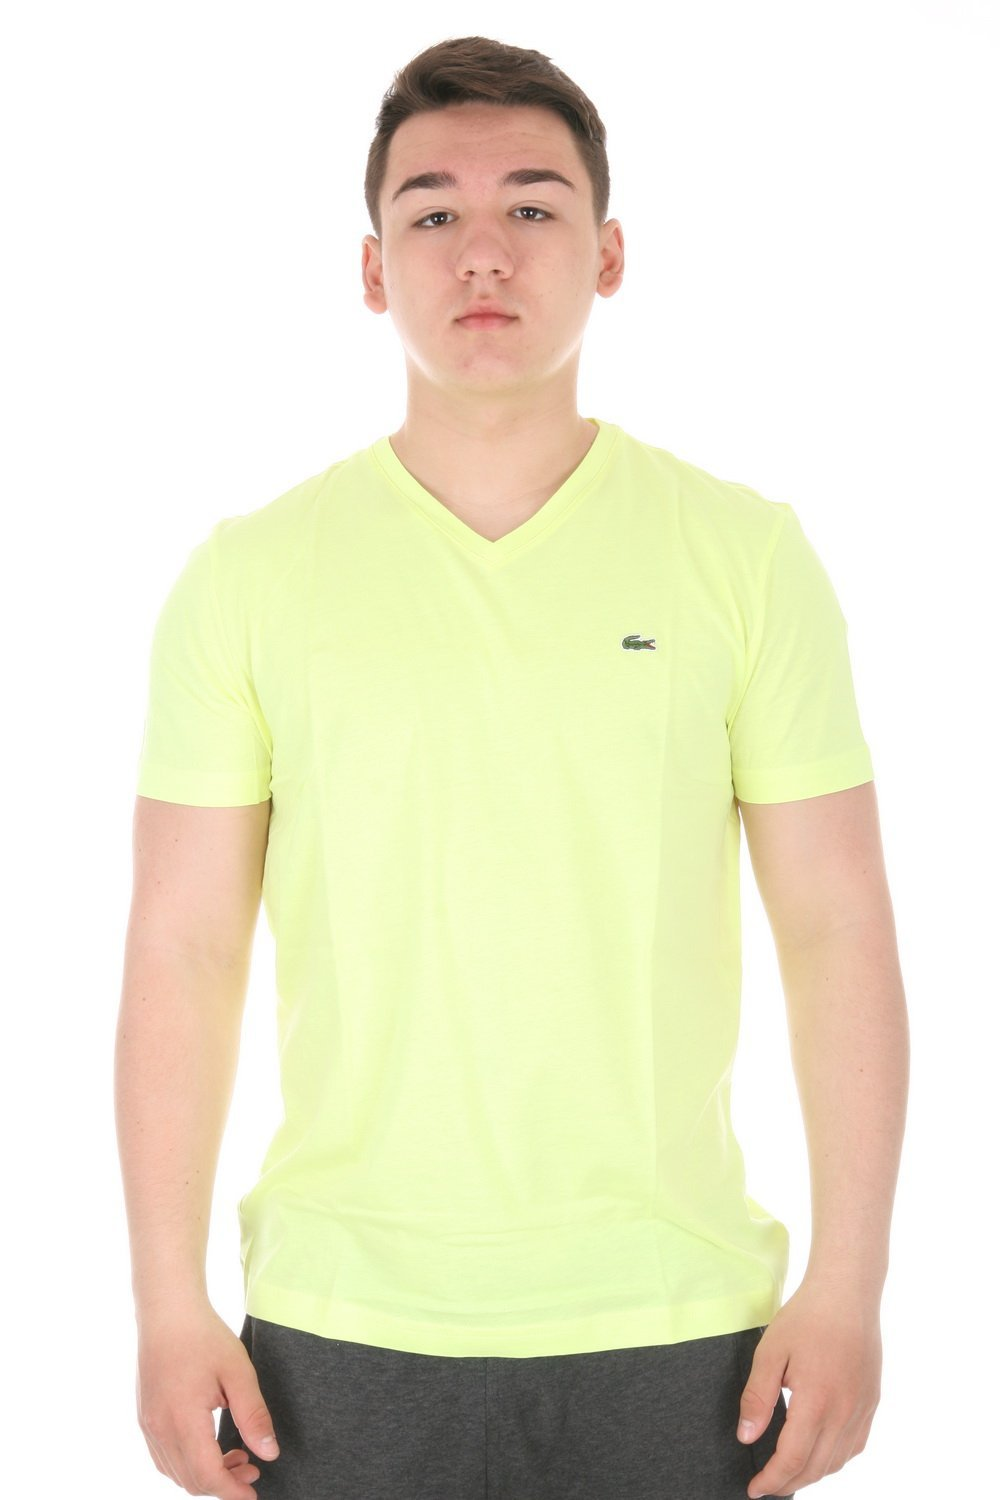 Lacoste men 39 s short sleeve pima cotton v neck t shirt ebay for Pima cotton tee shirts